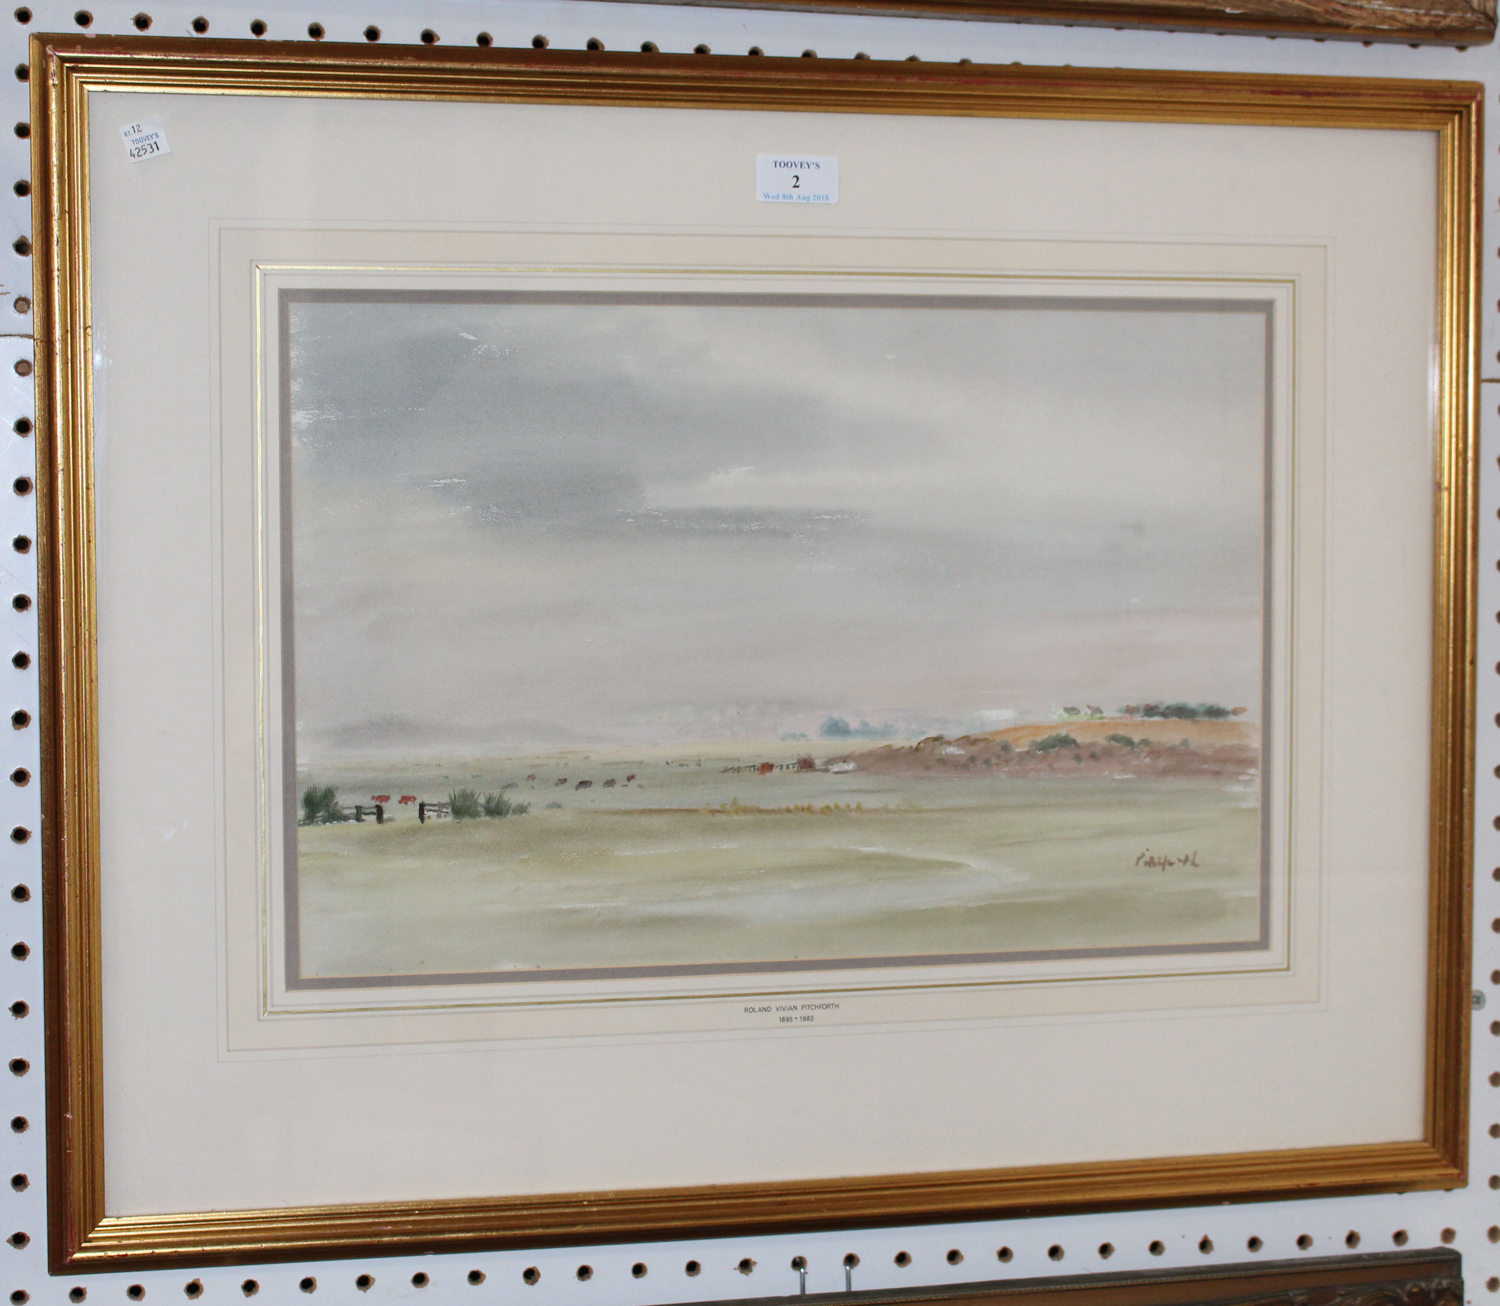 Poort Frame Roland Vivian Pitchforth Landscape With Meadows And Hills 20th